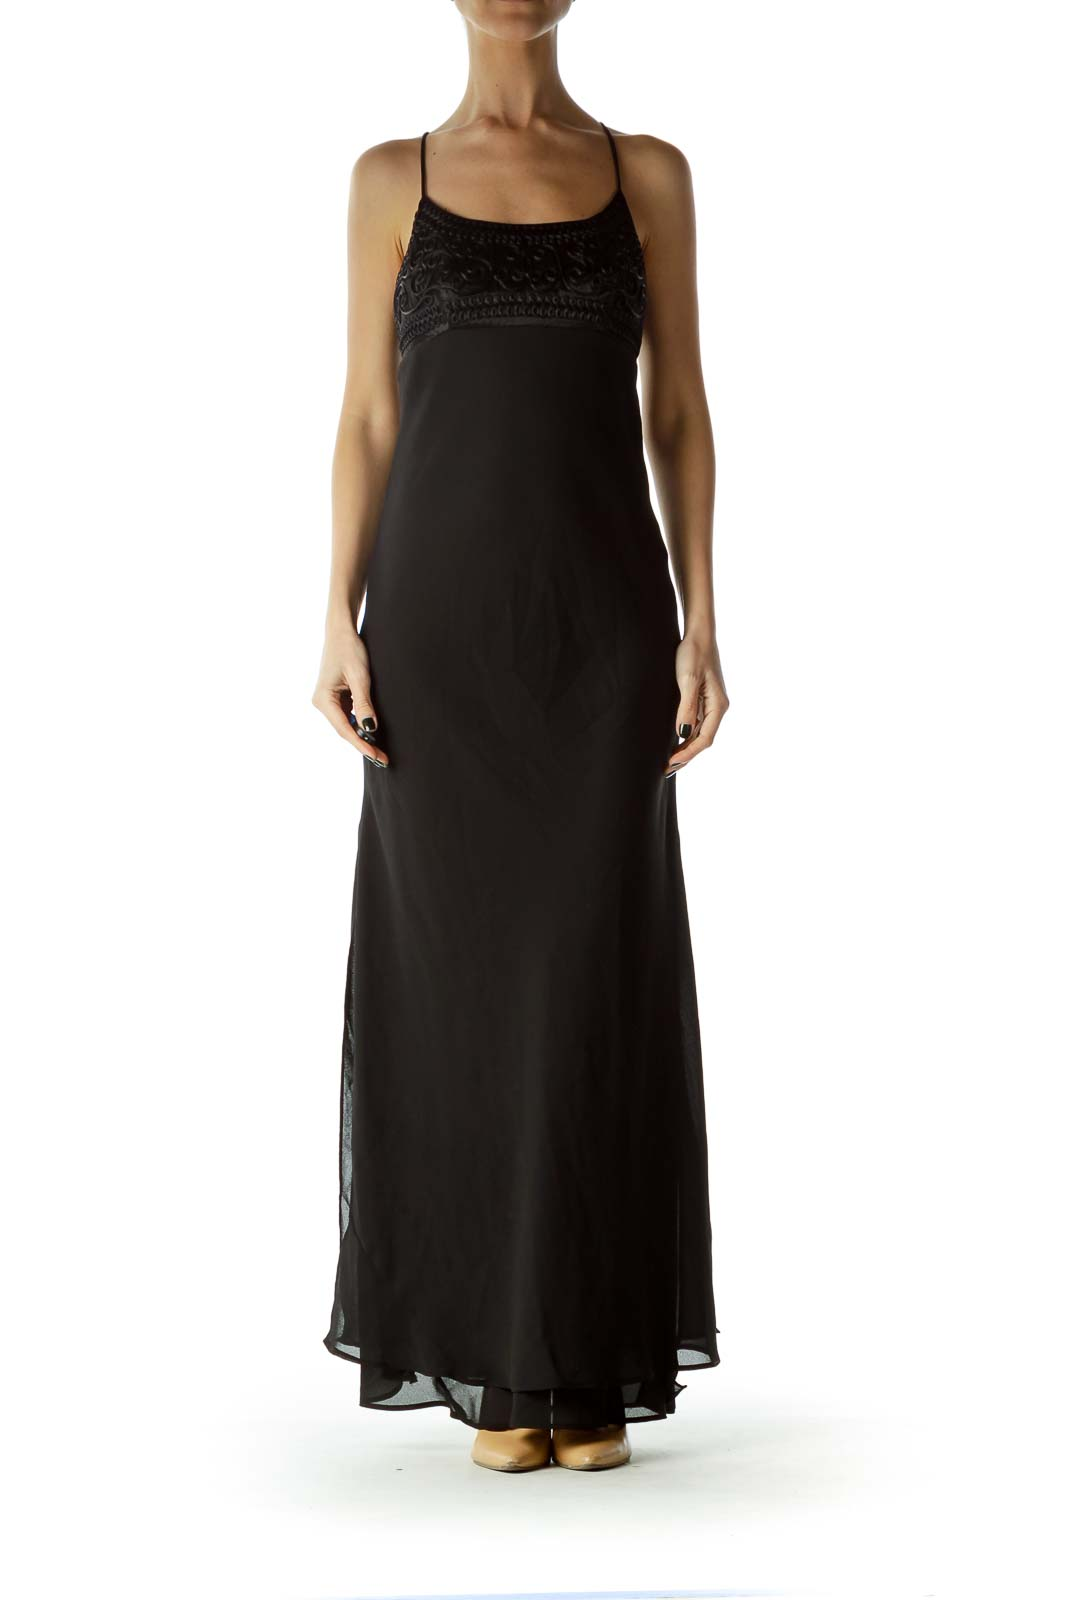 Black Spaghetti Strap Empire Waist Evening Dress